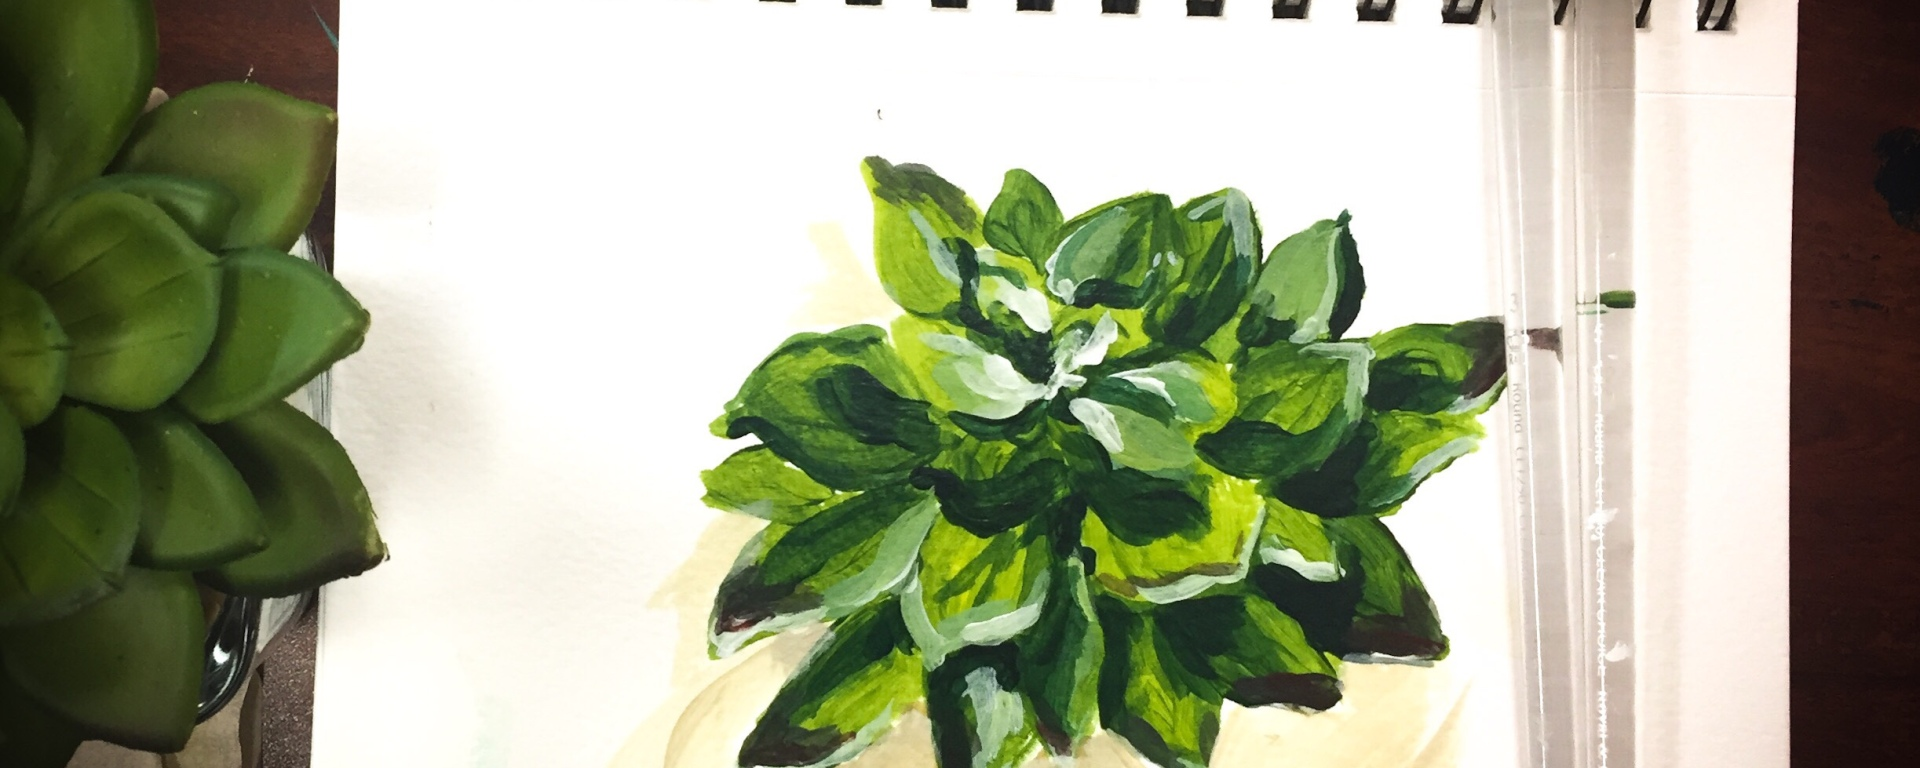 This time-lapse video shows you to paint a succulent plant using acrylic paint and only four colors!